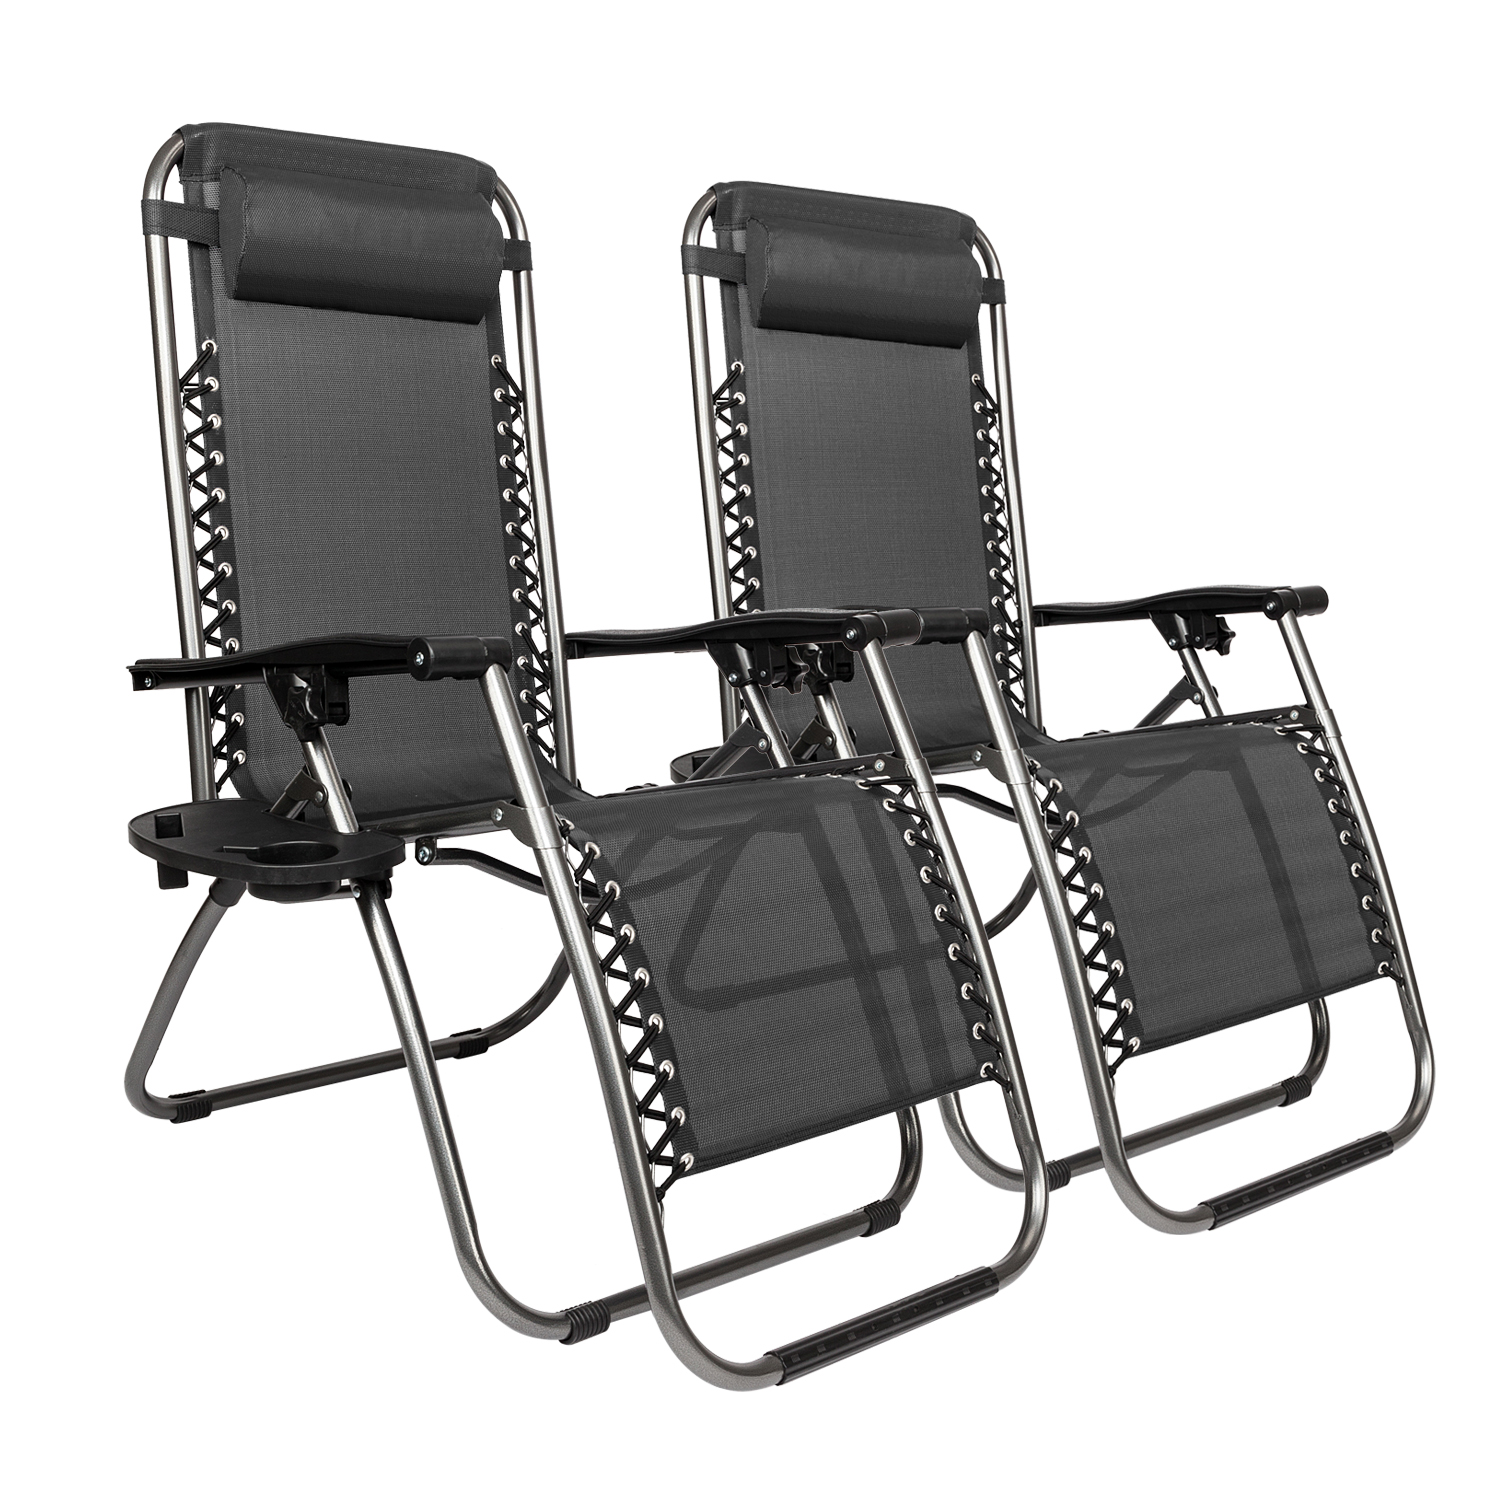 Folding Lounge Chairs 2 Folding Zero Gravity Lounge Chairs 43utility Tray Outdoor